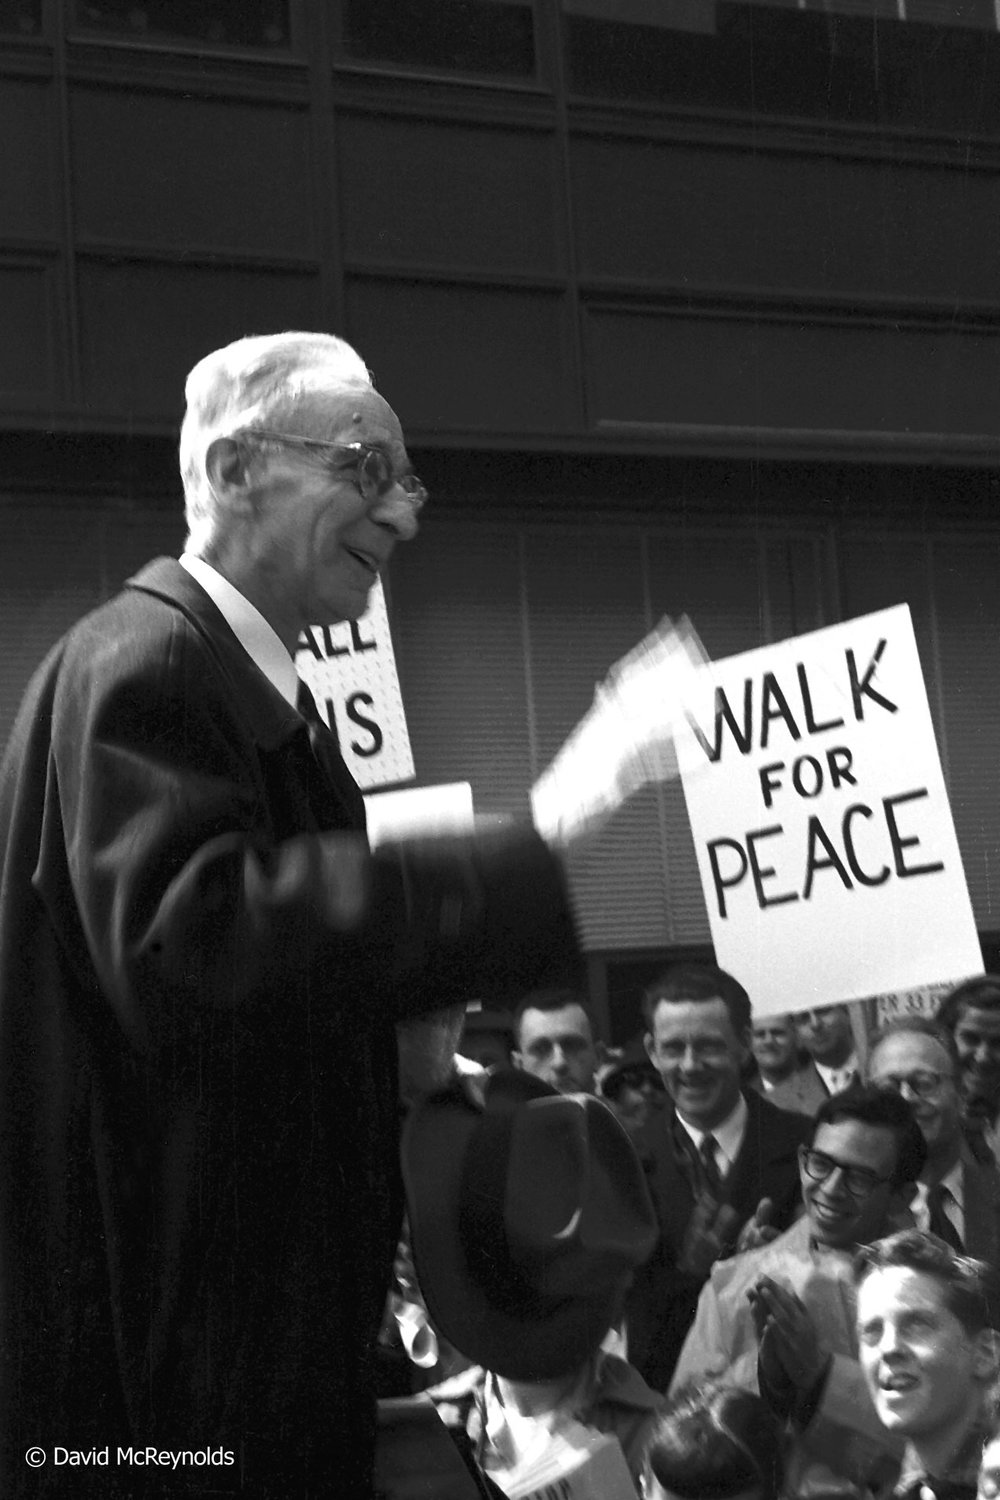 A.J. MUSTE, Walk for Peace, New York City, April 4, 1958.